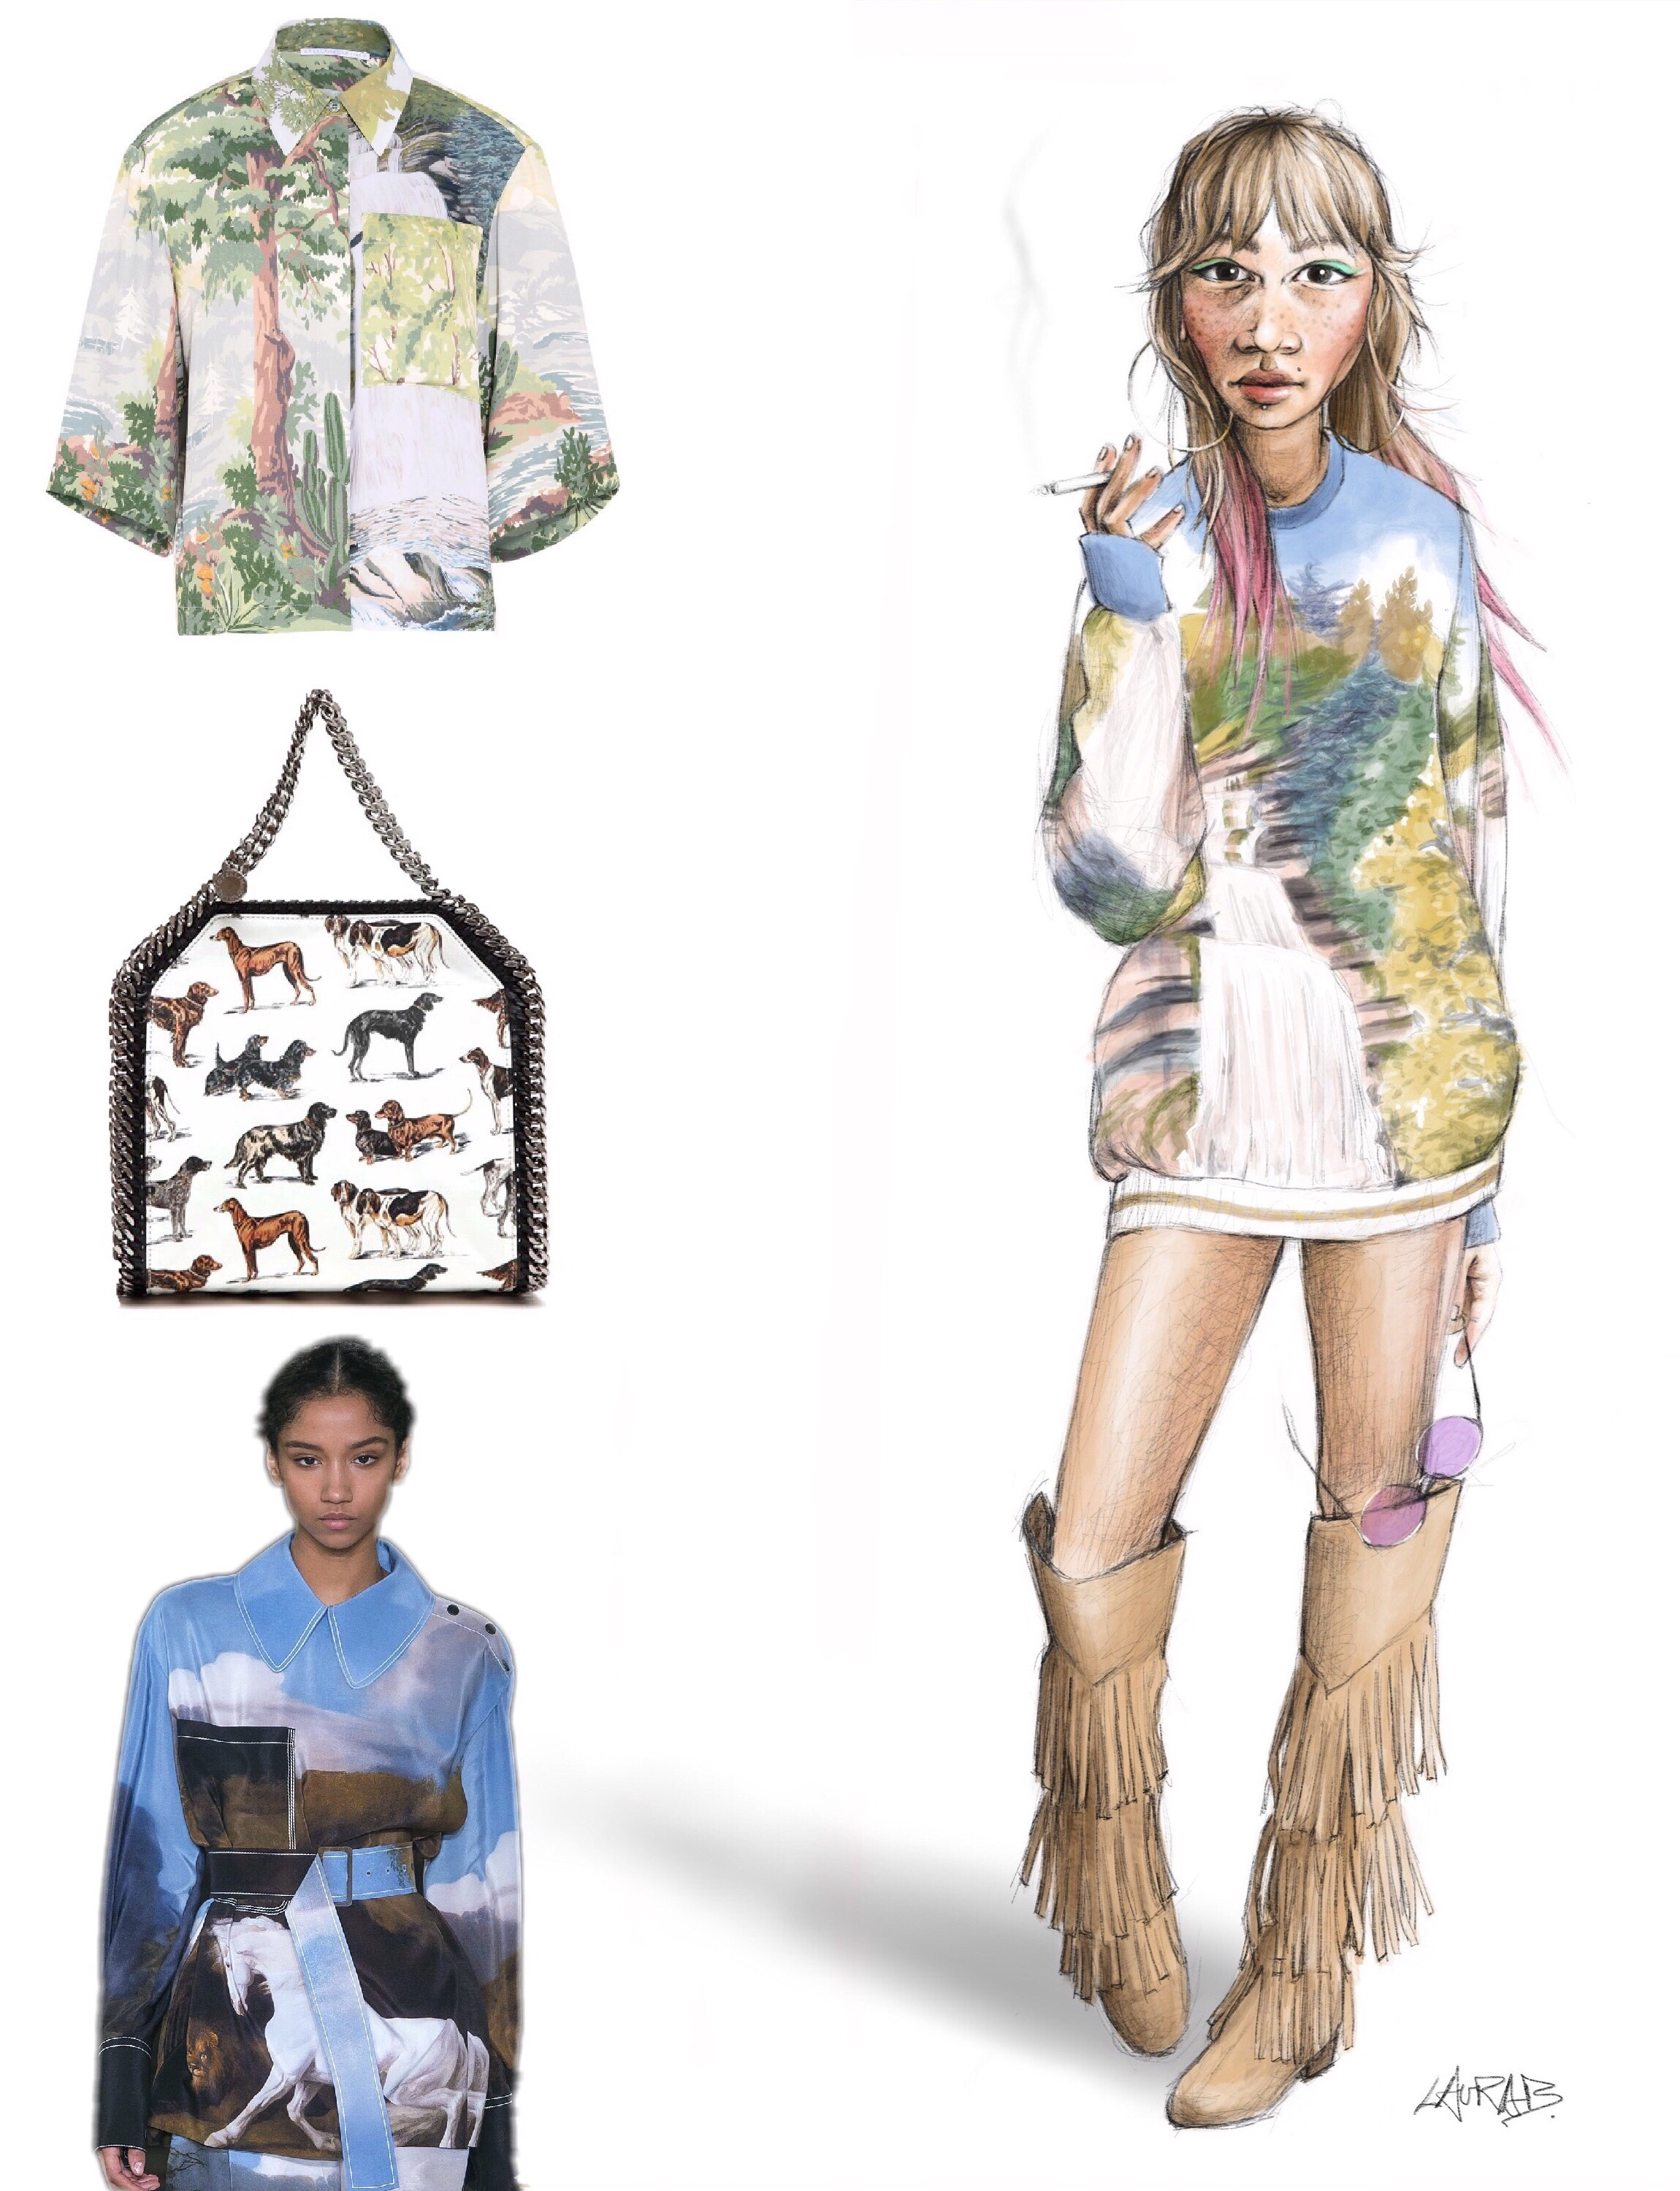 My illustration featuring a silk landscape print 'Ines' top by Stella McCartney